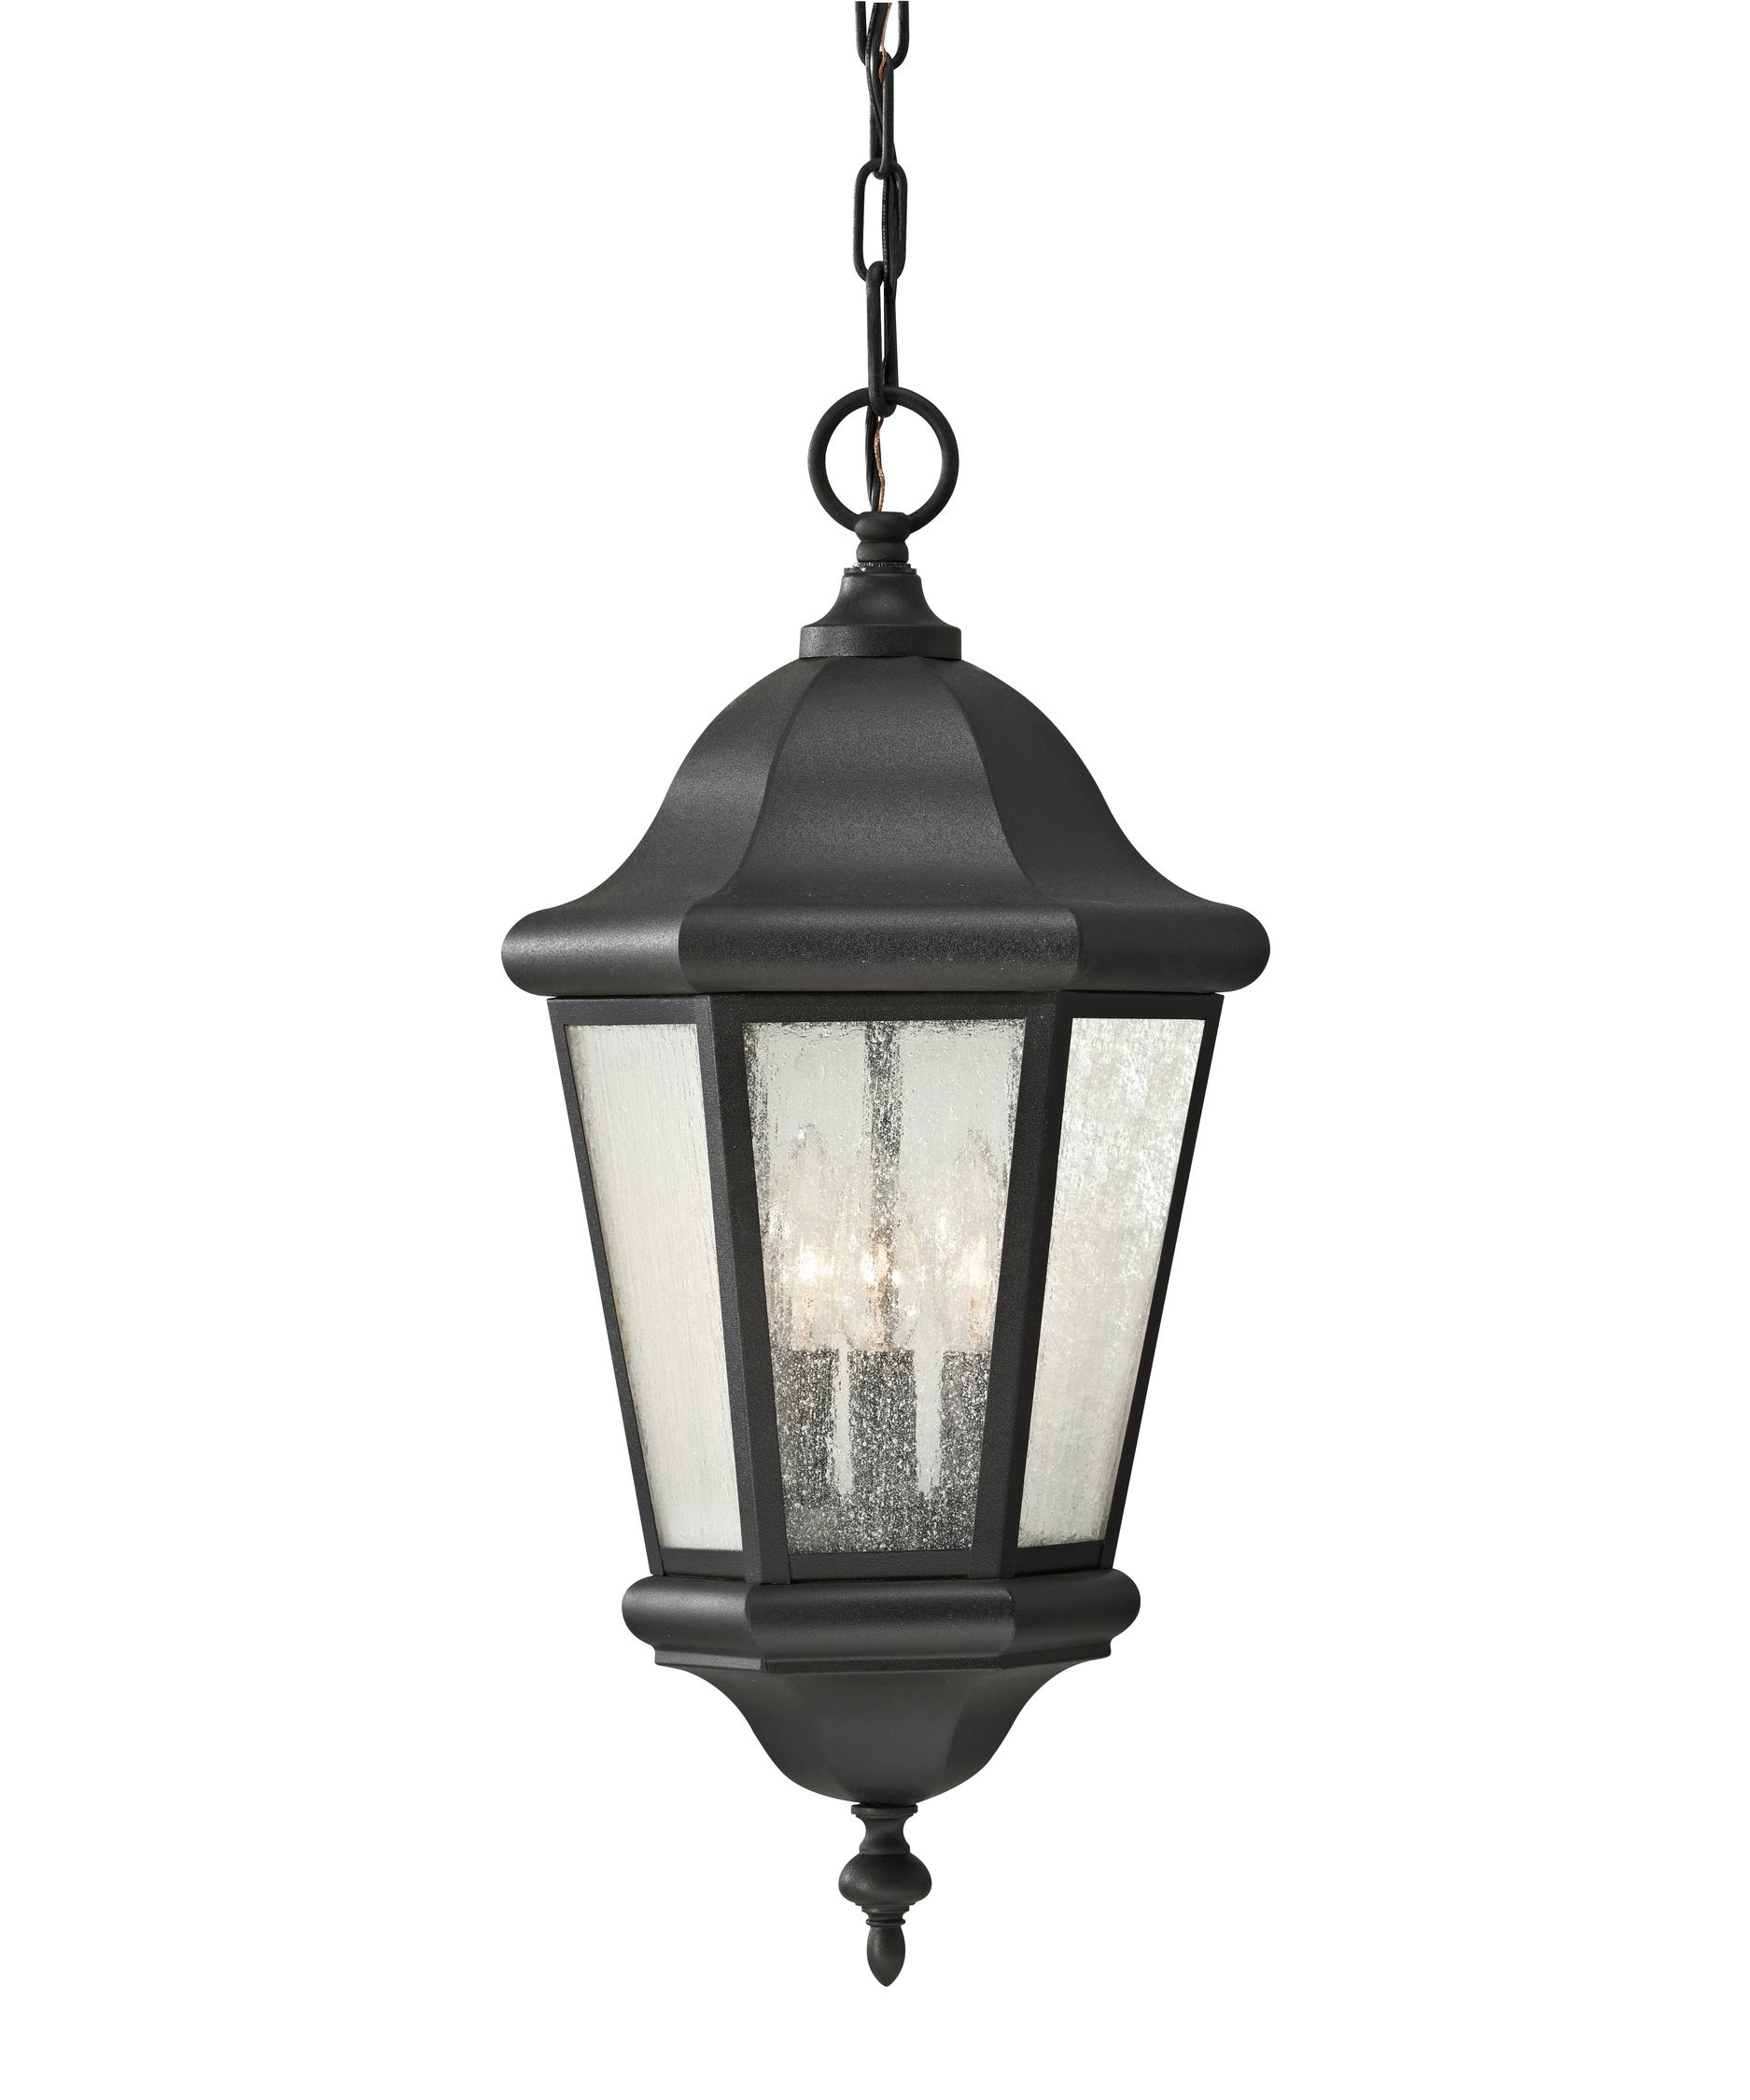 Outdoor hanging lamp - Shown In Black Finish And Clear Seeded Glass